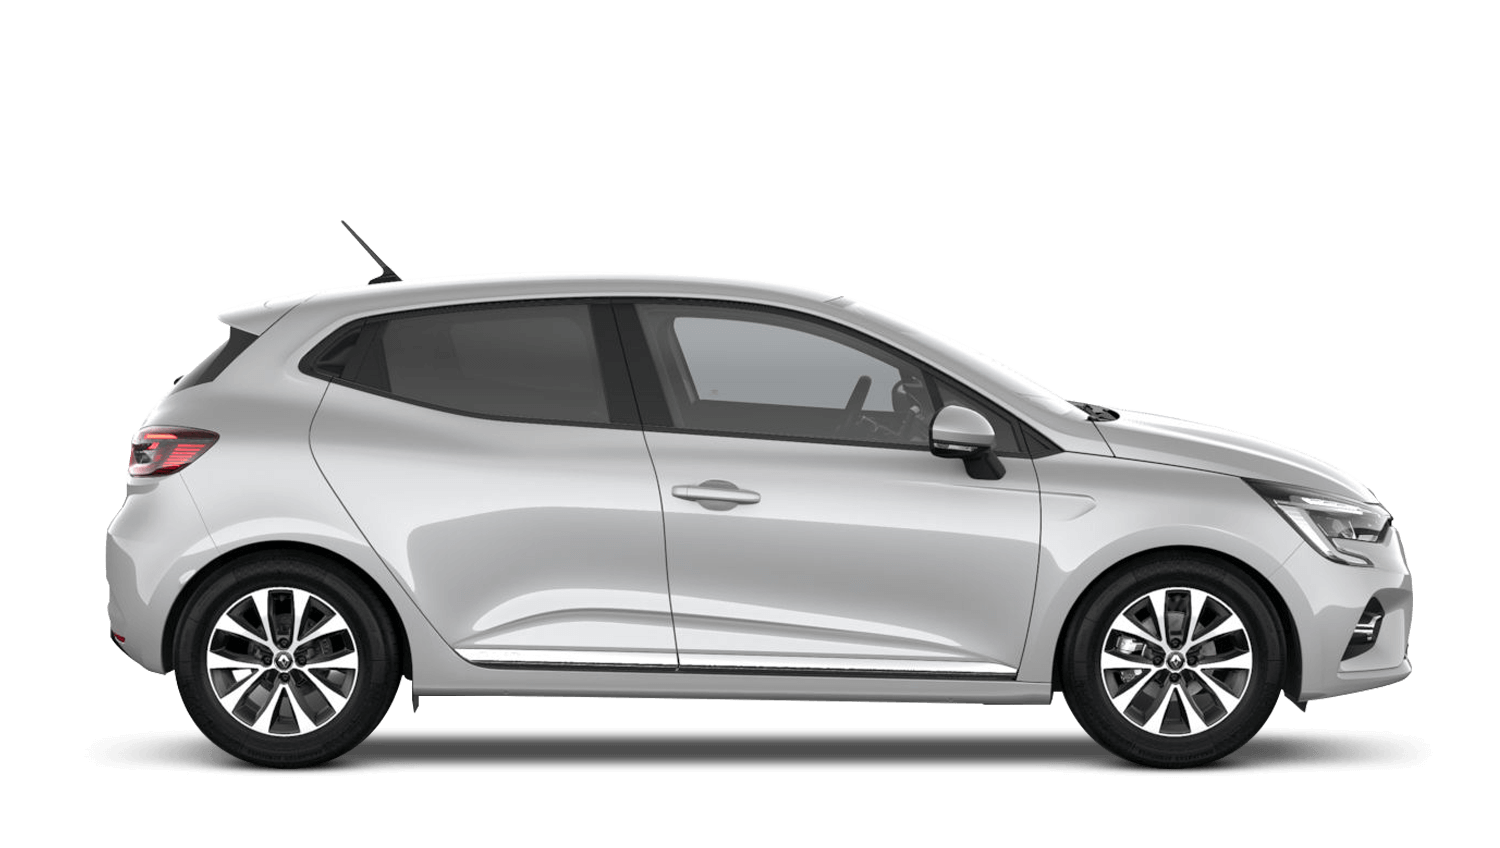 Renault Clio Iconic TCe 90 5dr